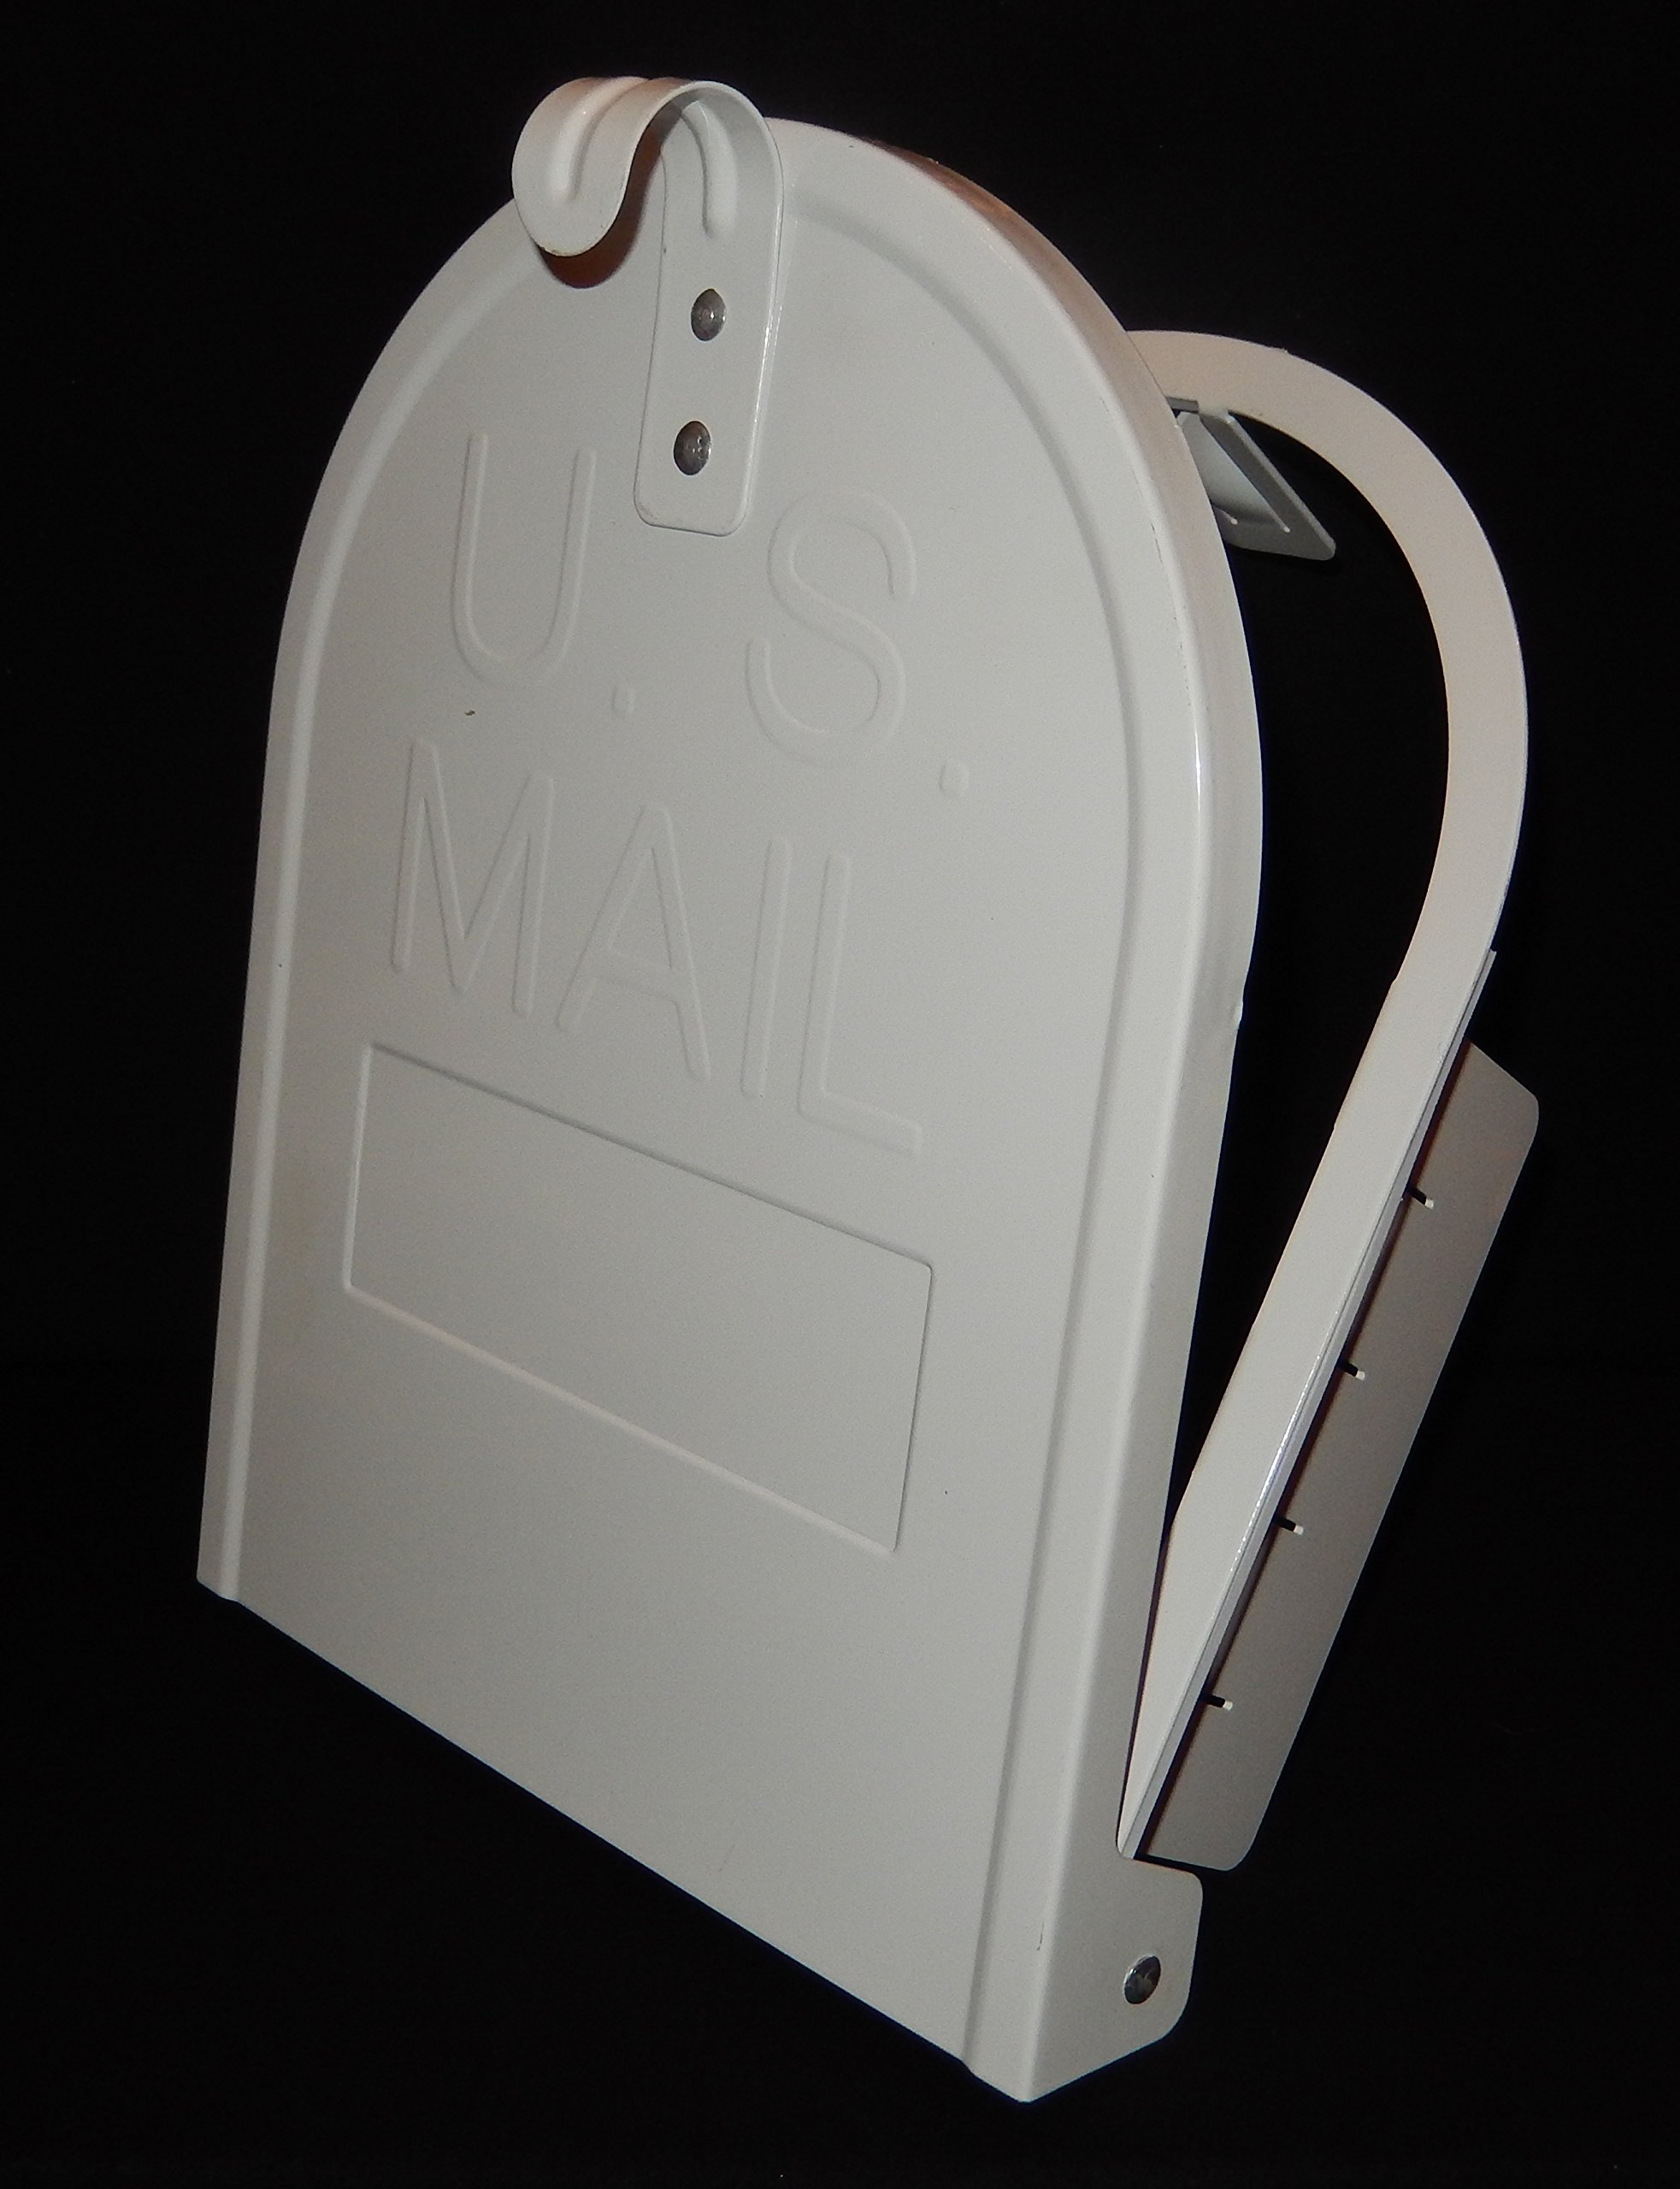 8 Inch (Width) by 10 Inch (Height) RetroFit Snap-In Mailbox Door Replacement  White